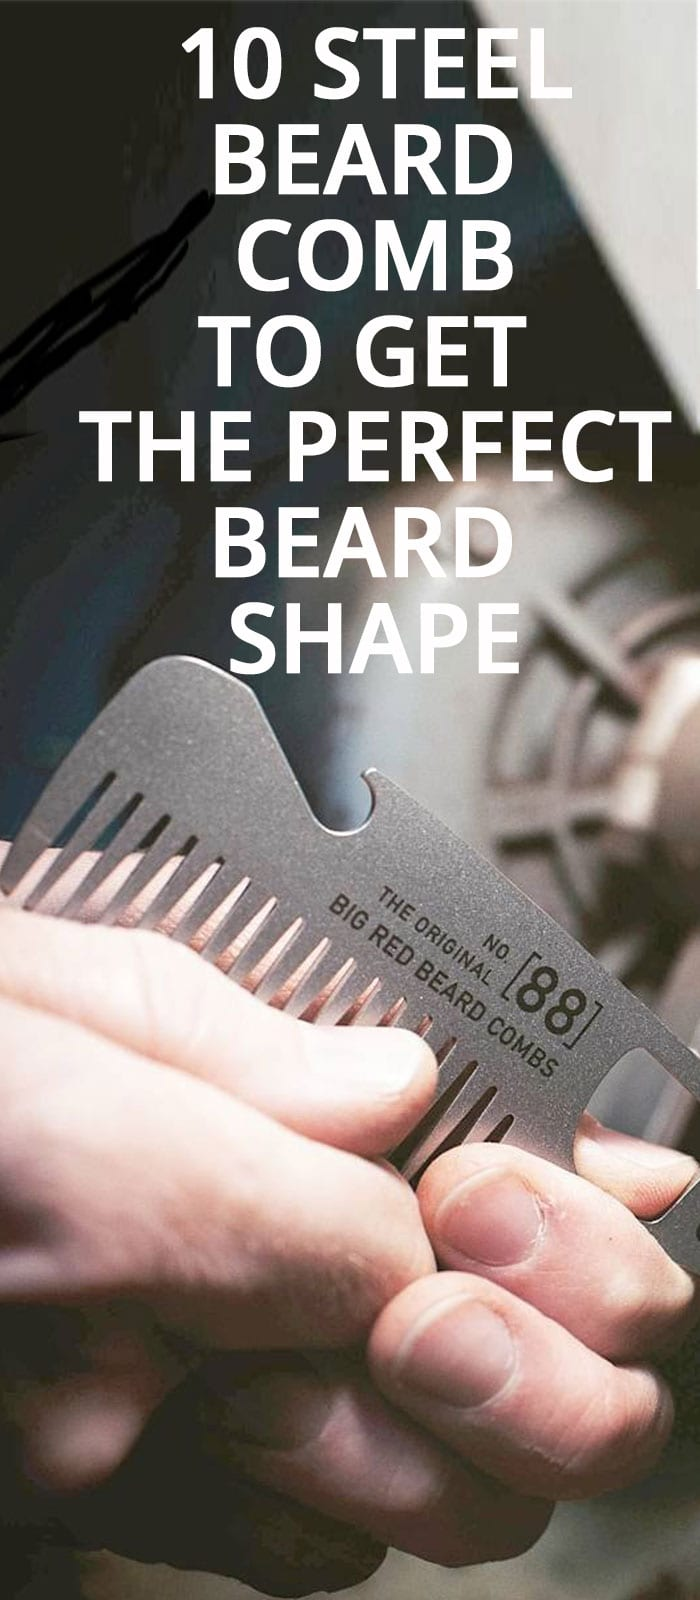 10 STEEL BEARD COMB